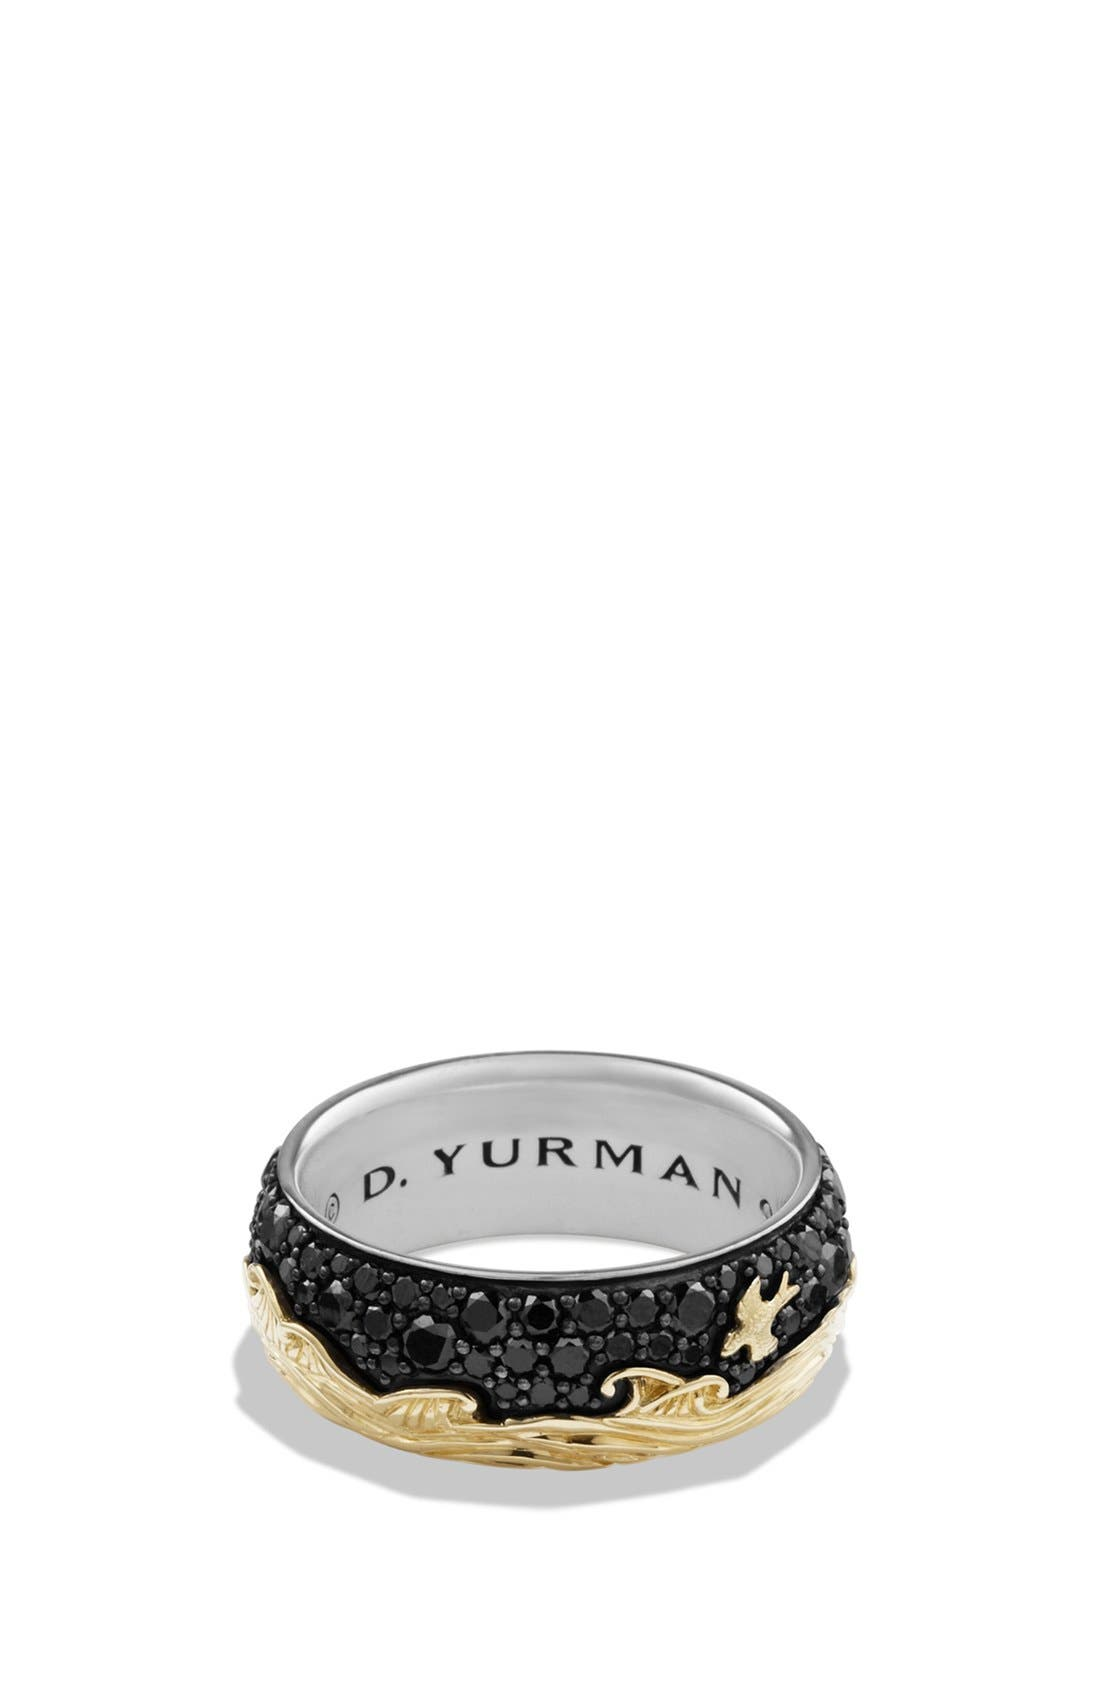 'Waves' Band Ring with 18K Gold and Black Diamonds,                             Main thumbnail 1, color,                             BLACK DIAMOND